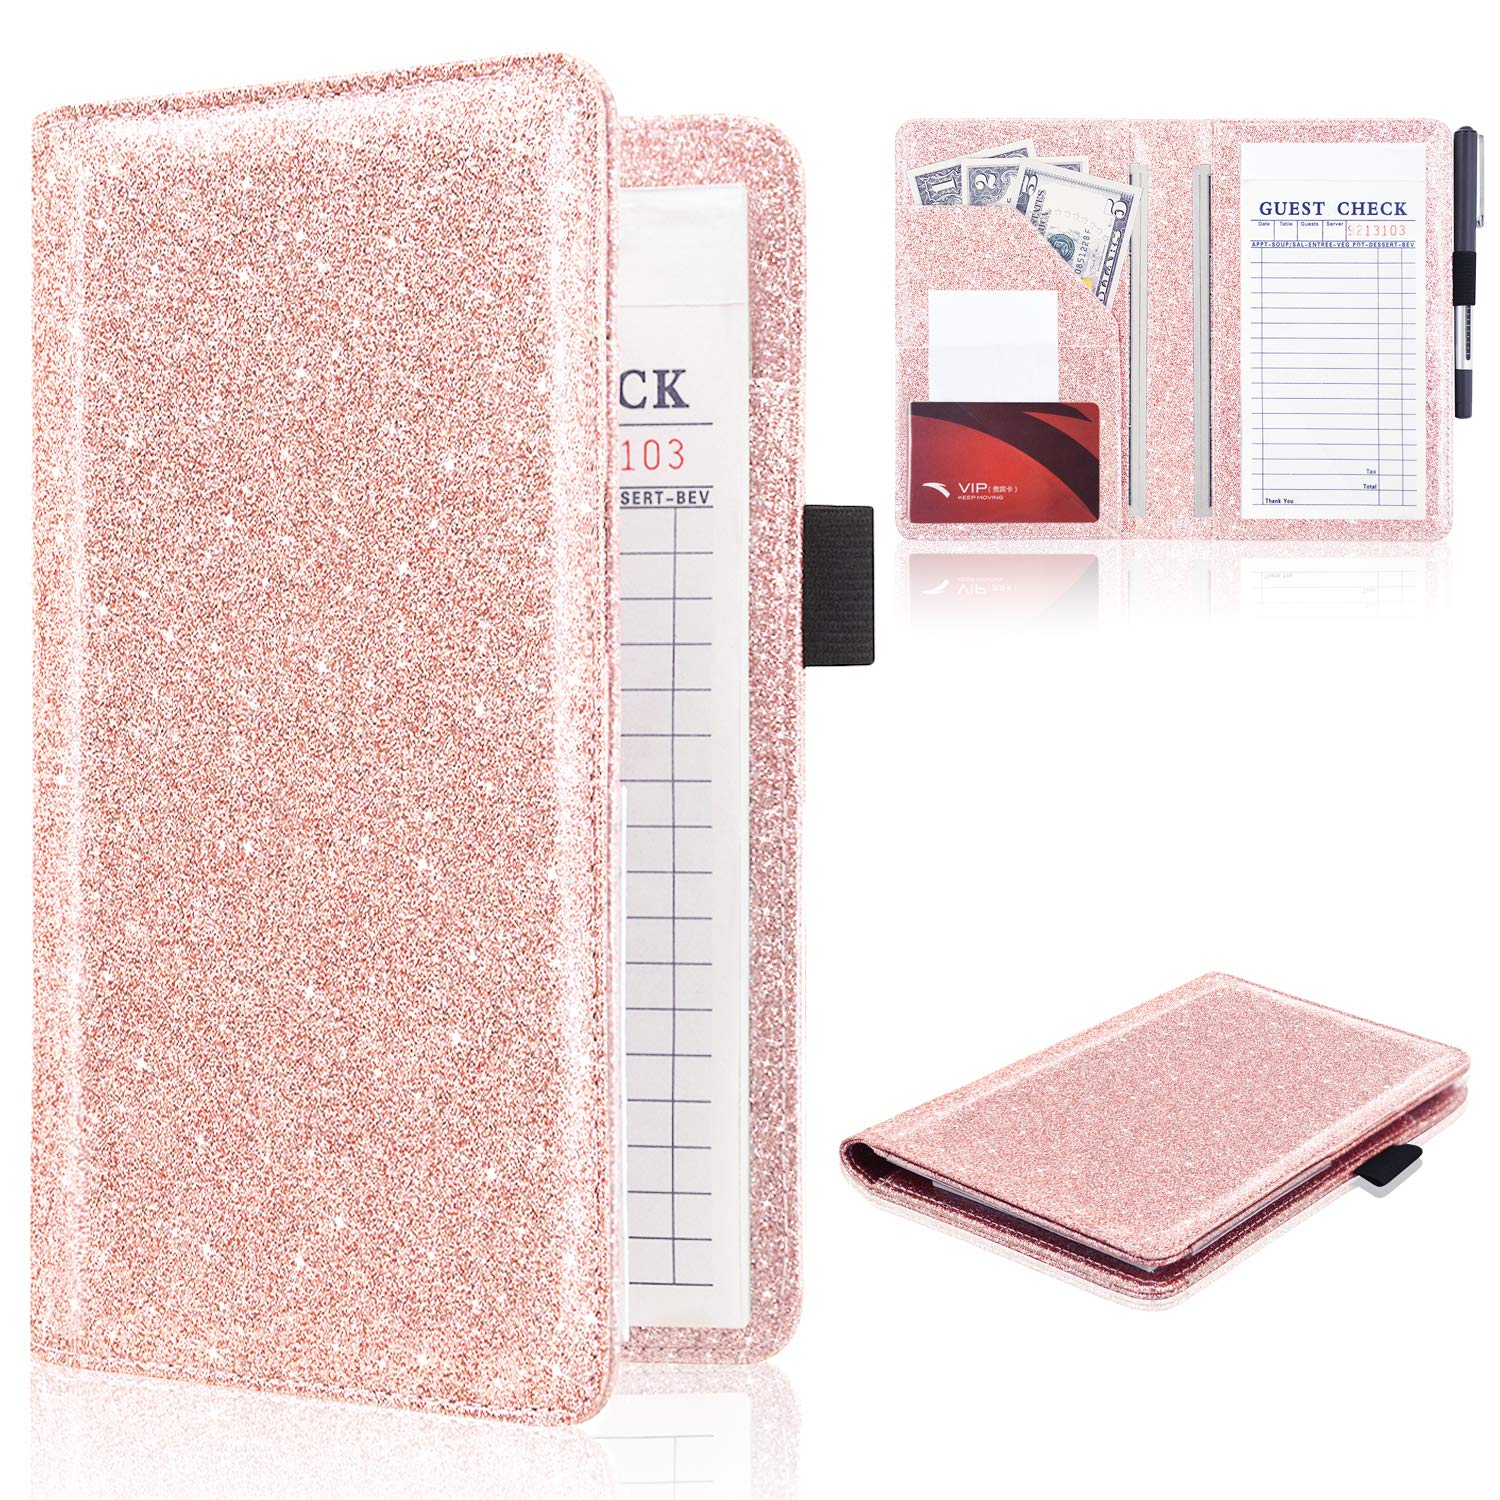 Server Book (2020 Edition), ACdream Waiter Book Server Wallet Server Pads Waitress Book Restaurant Waitstaff Organizer, Guest Check Book Holder Money Pocket Fit Server Apron, Glitter Rose Gold